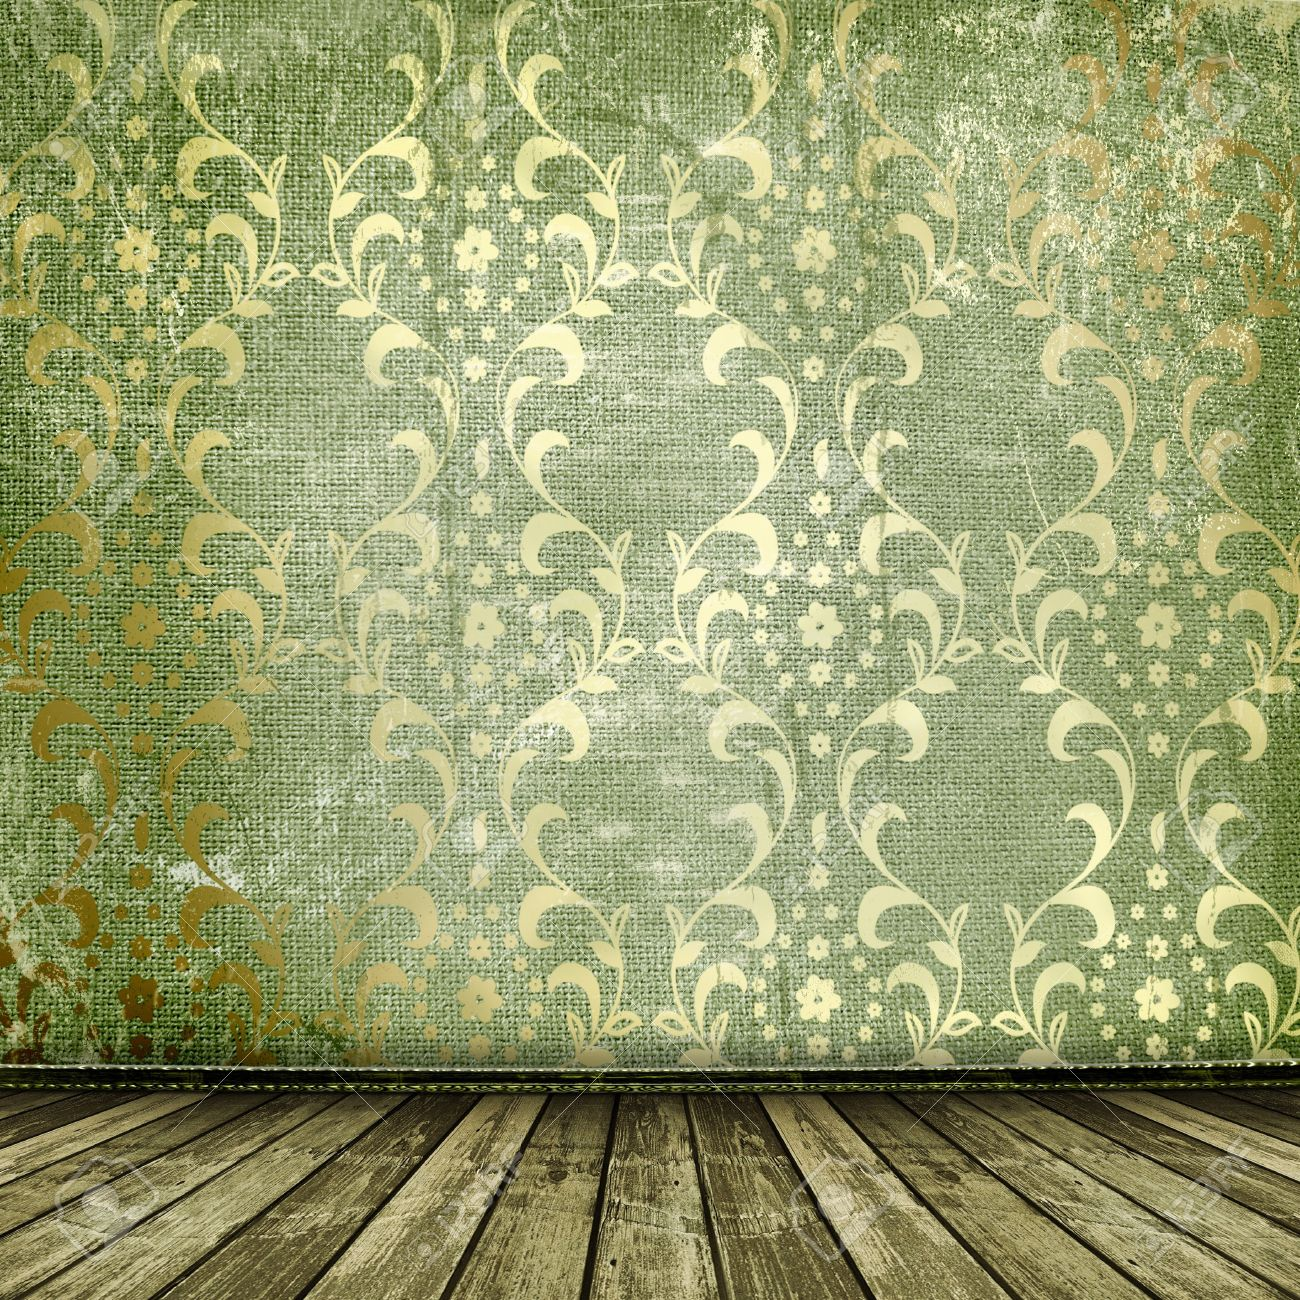 Old Gold Frames Victorian Style On The Wall In The Room Stock Photo ...